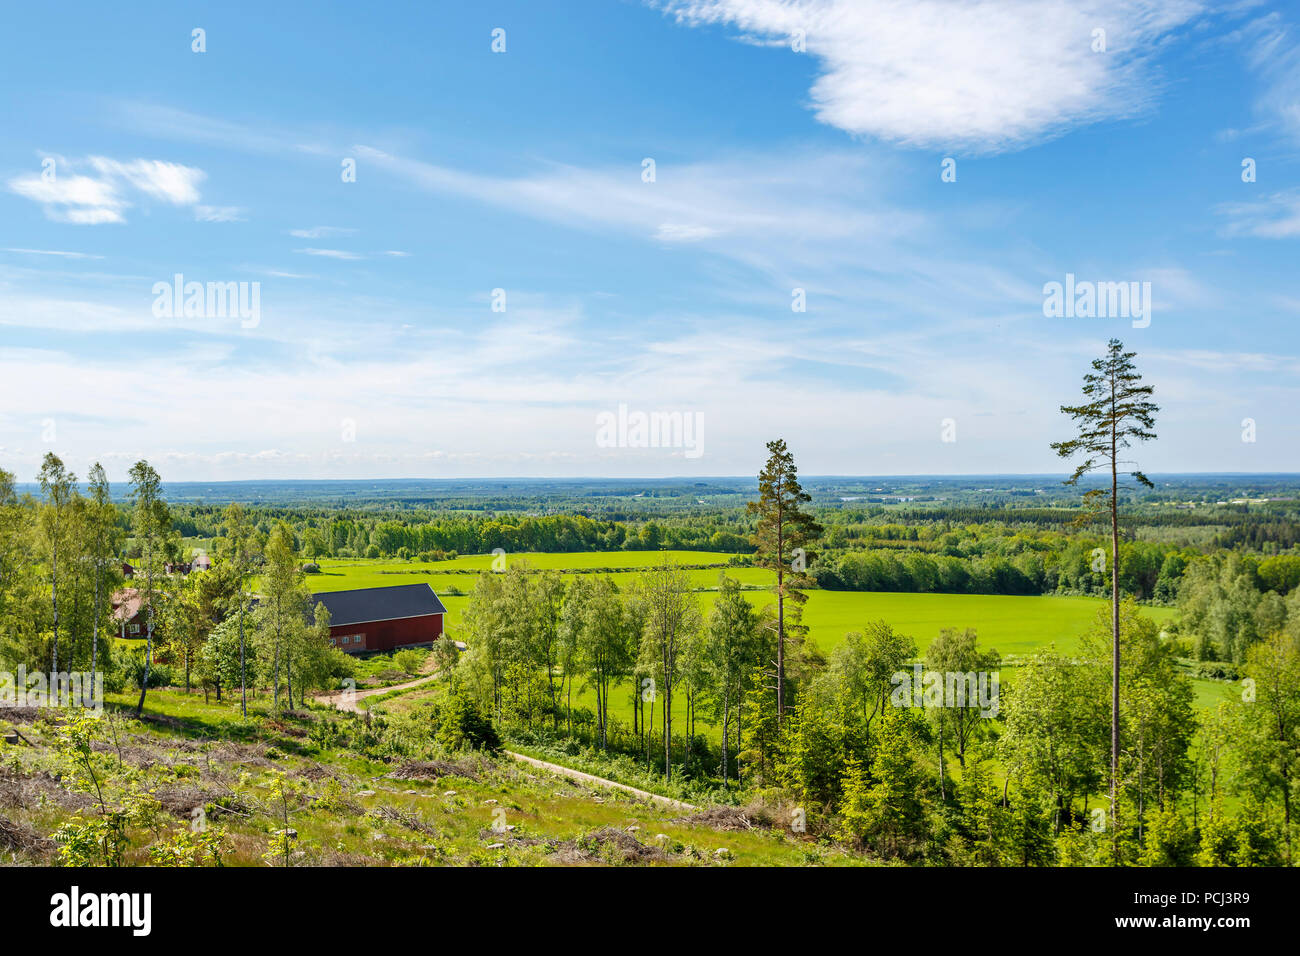 View of rural landscape with fields and a barn - Stock Image